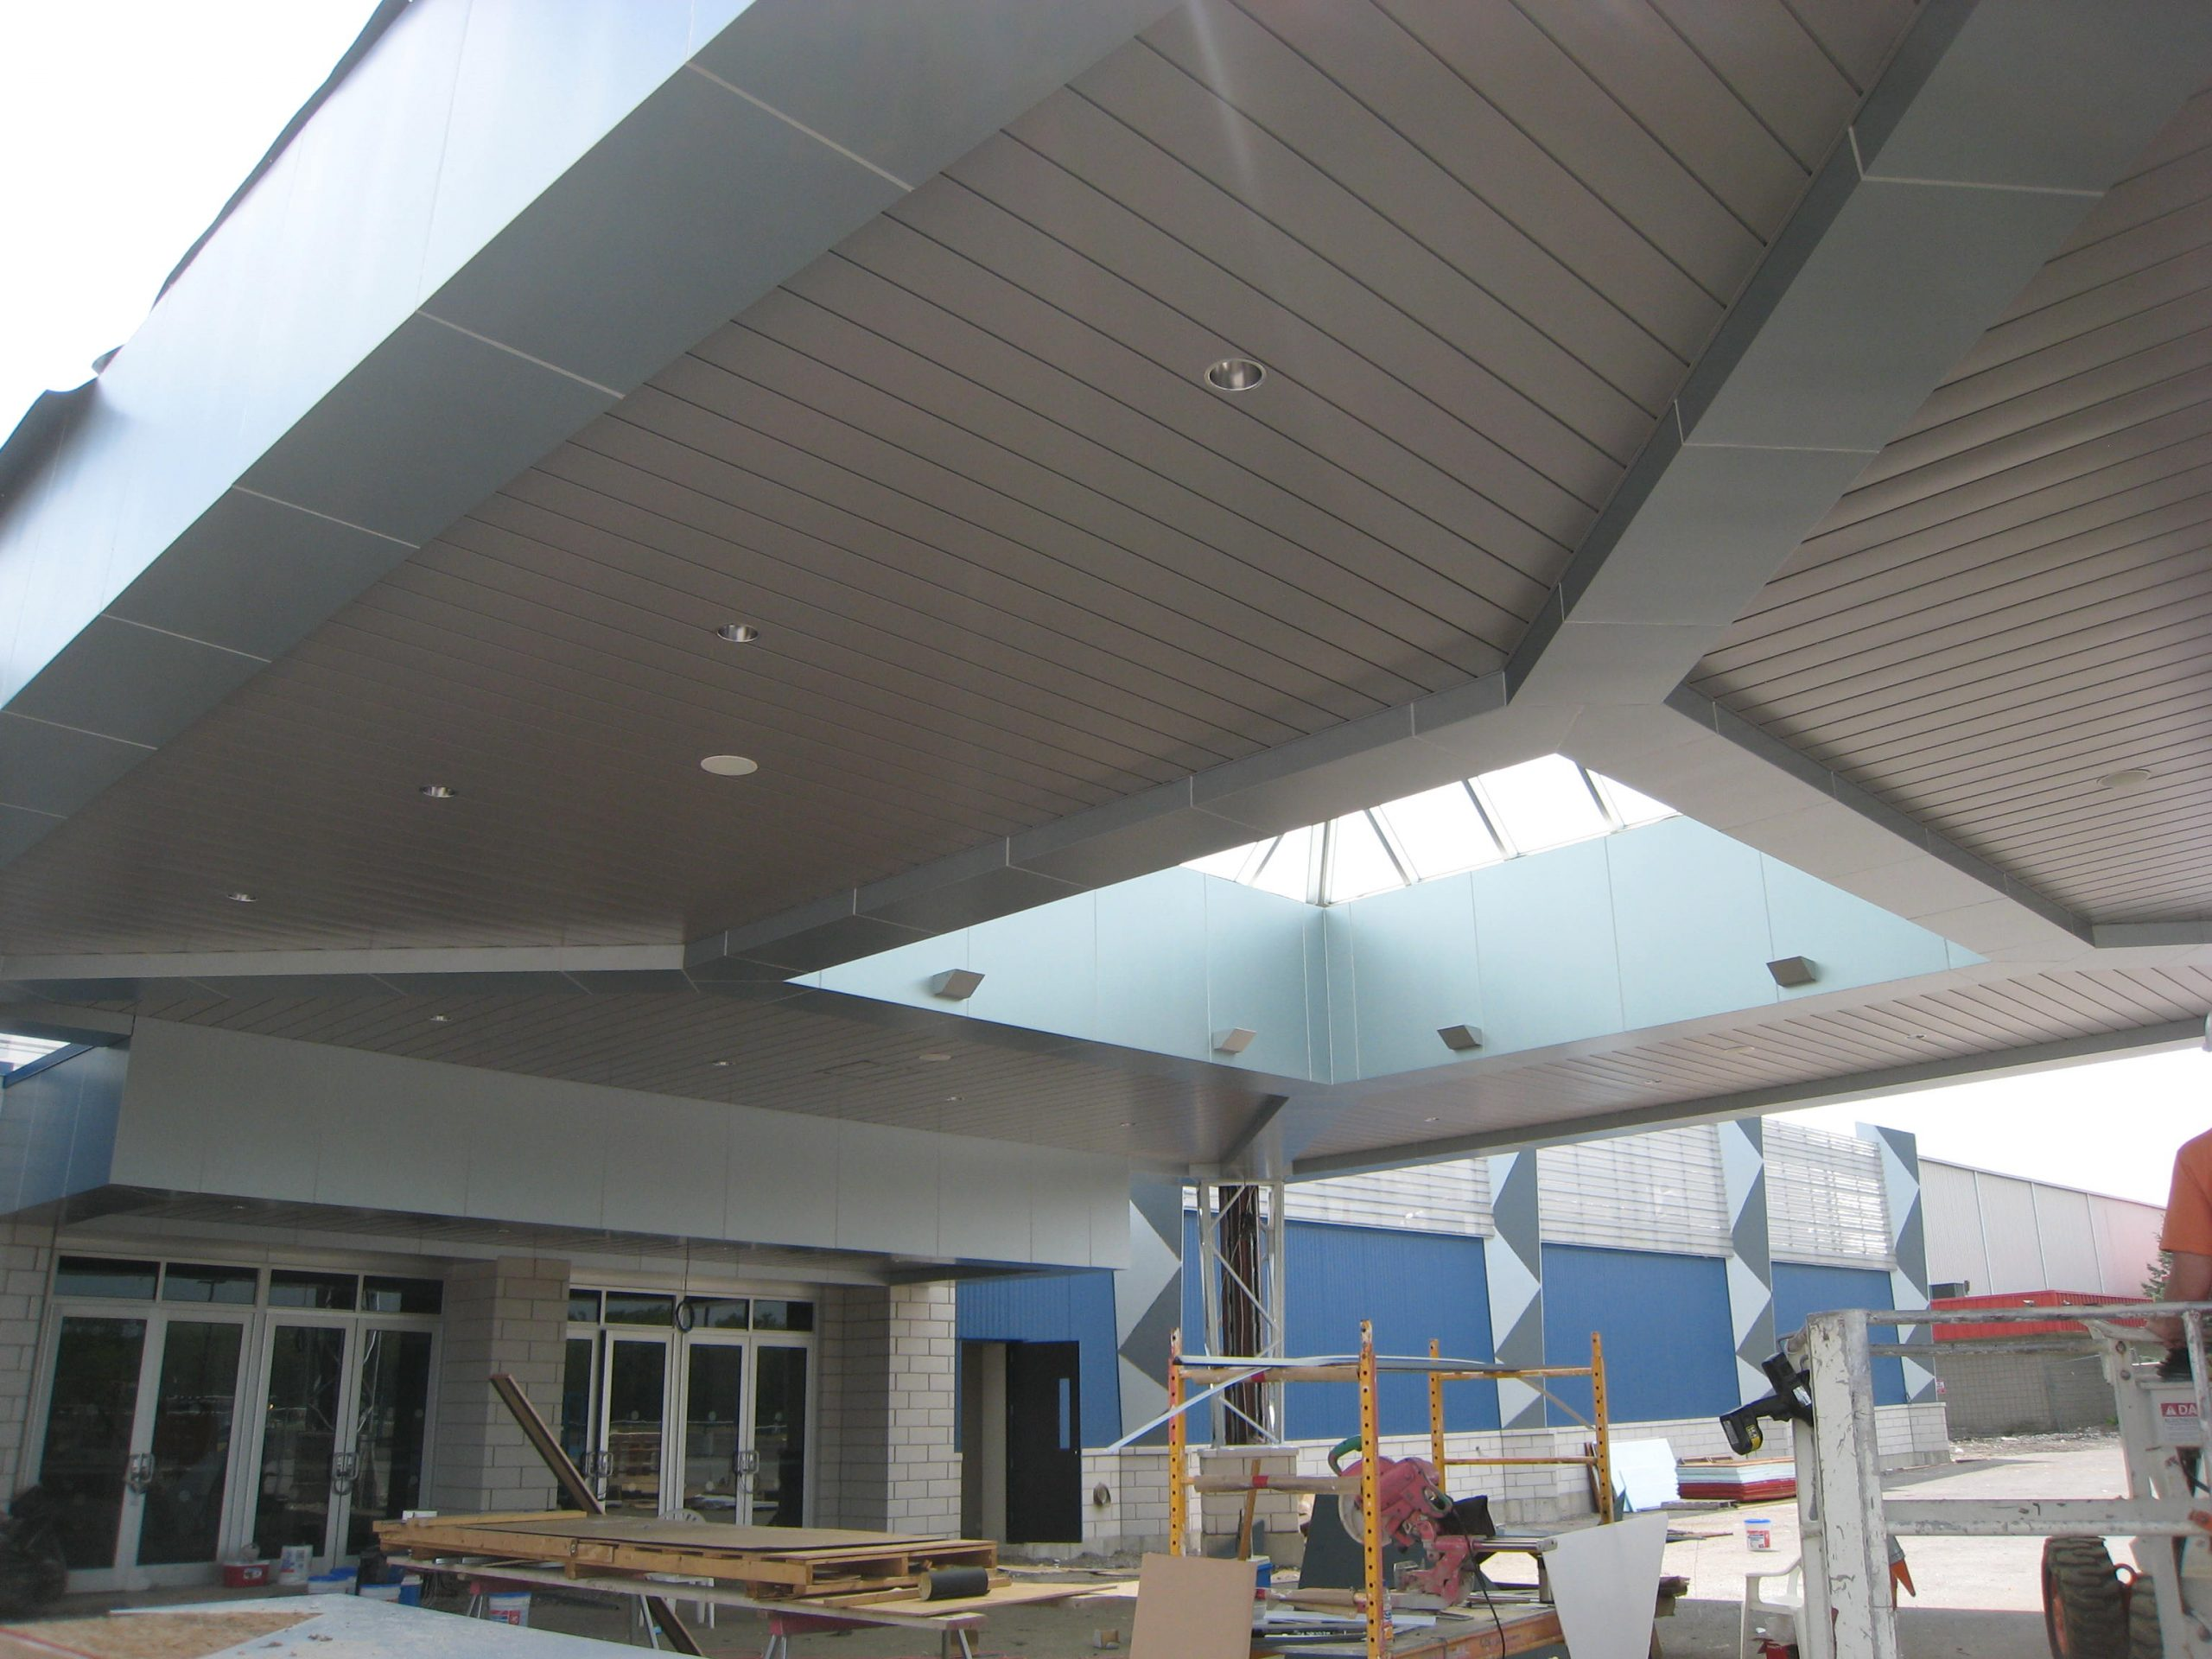 exterior facade and canopy outside hamburg racetrack and casino